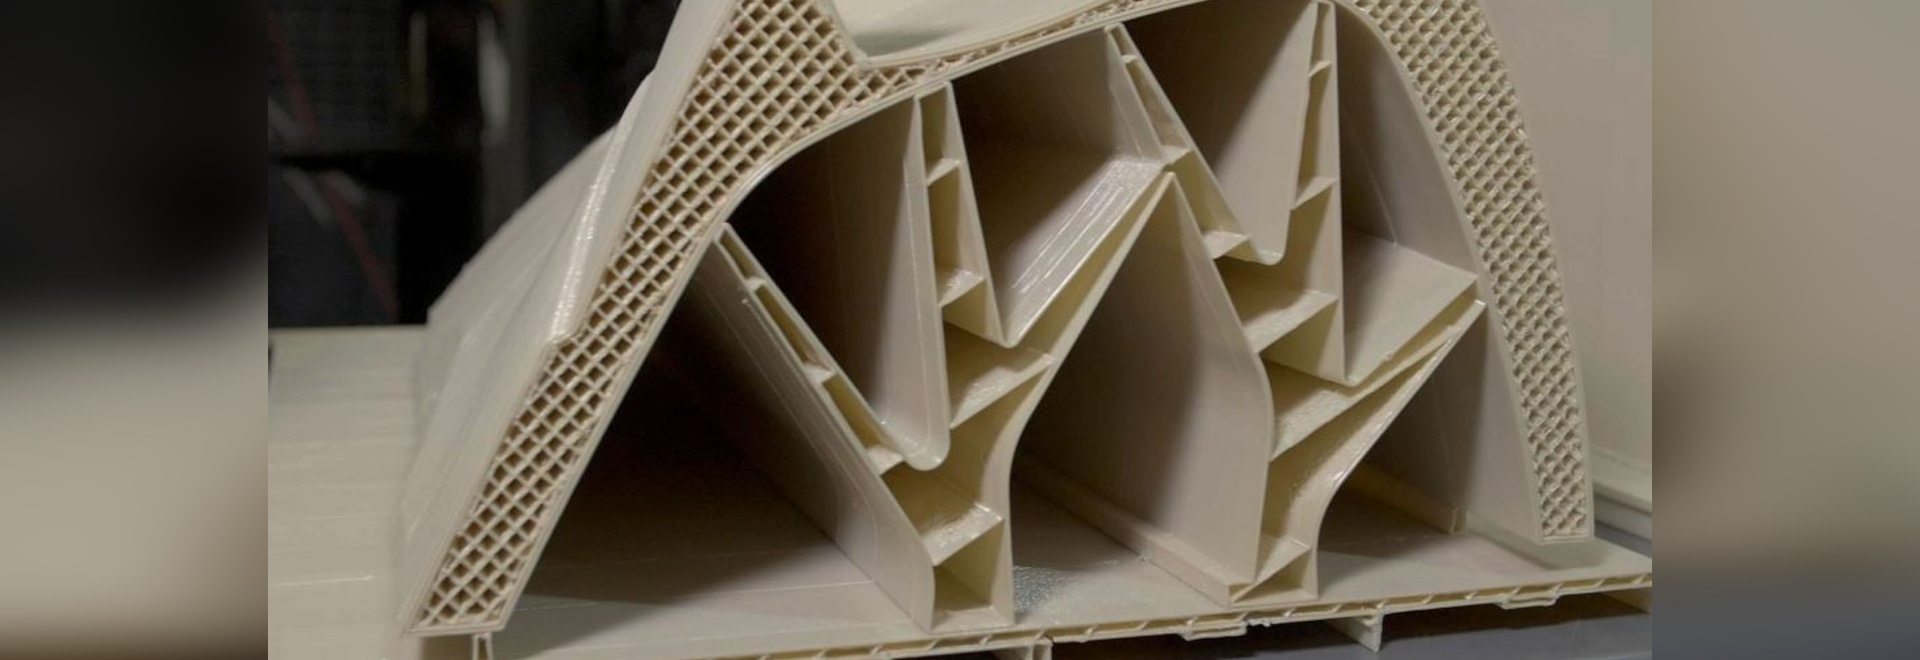 Ford Announces Plans to Use 3D Printing on Wider Scale for Vehicle Parts